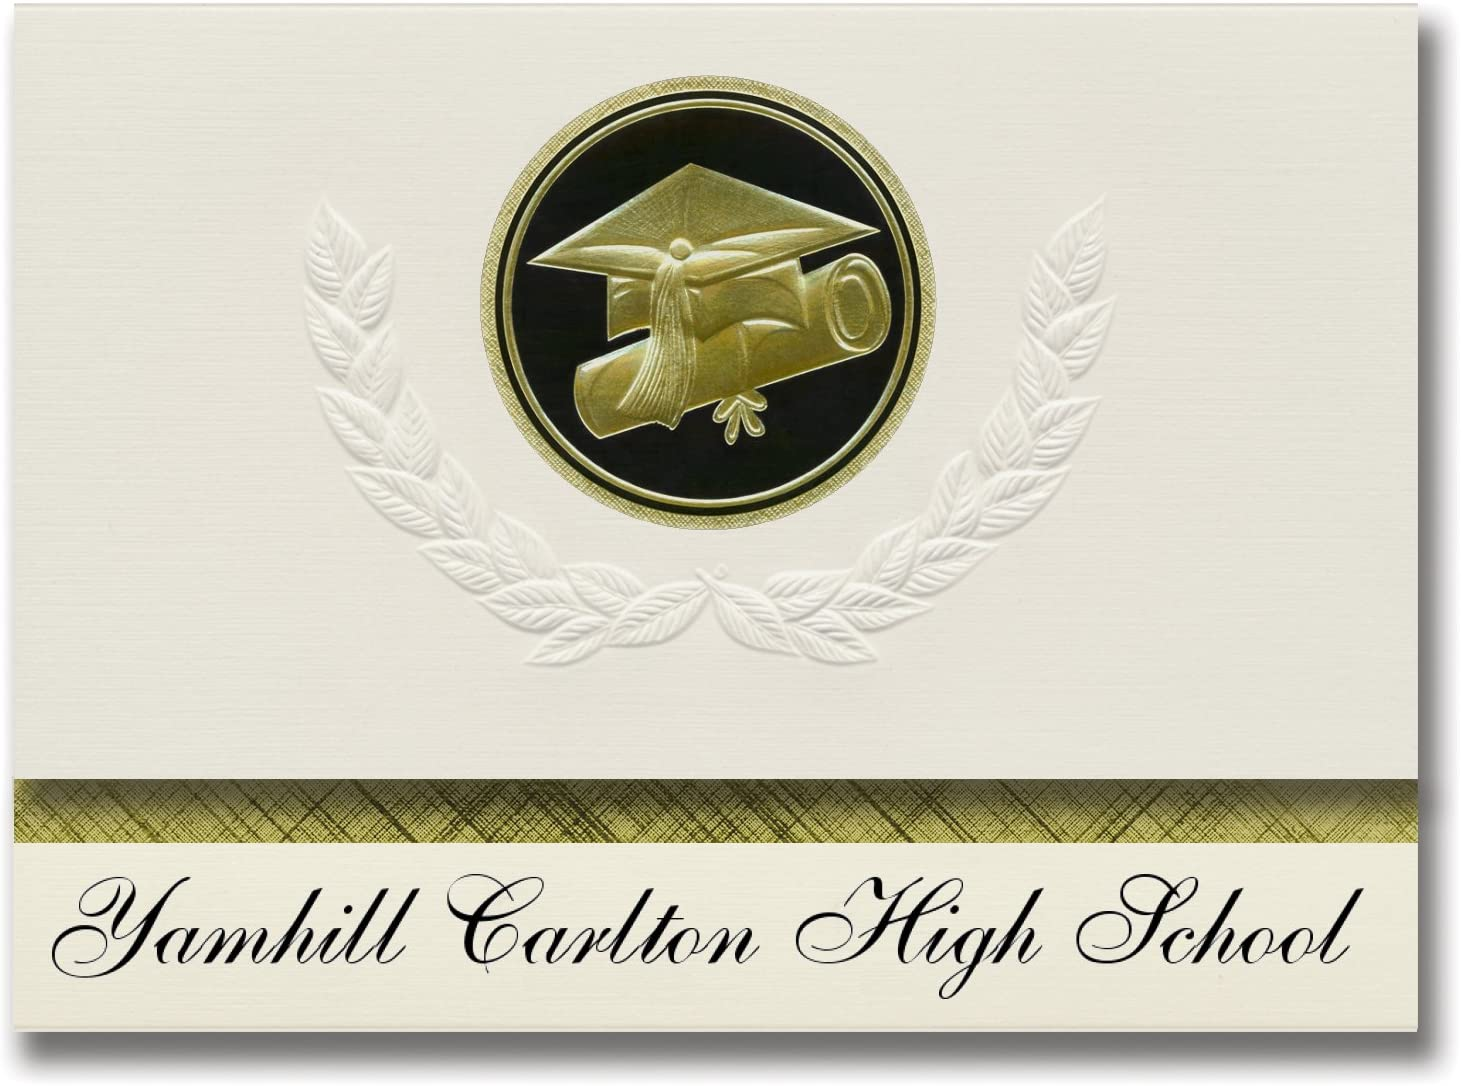 Signature Announcements Yamhill Carlton High School (Yamhill, OR) Graduation Announcements, Presidential style, Elite package of 25 Cap & Diploma Seal Black & Gold